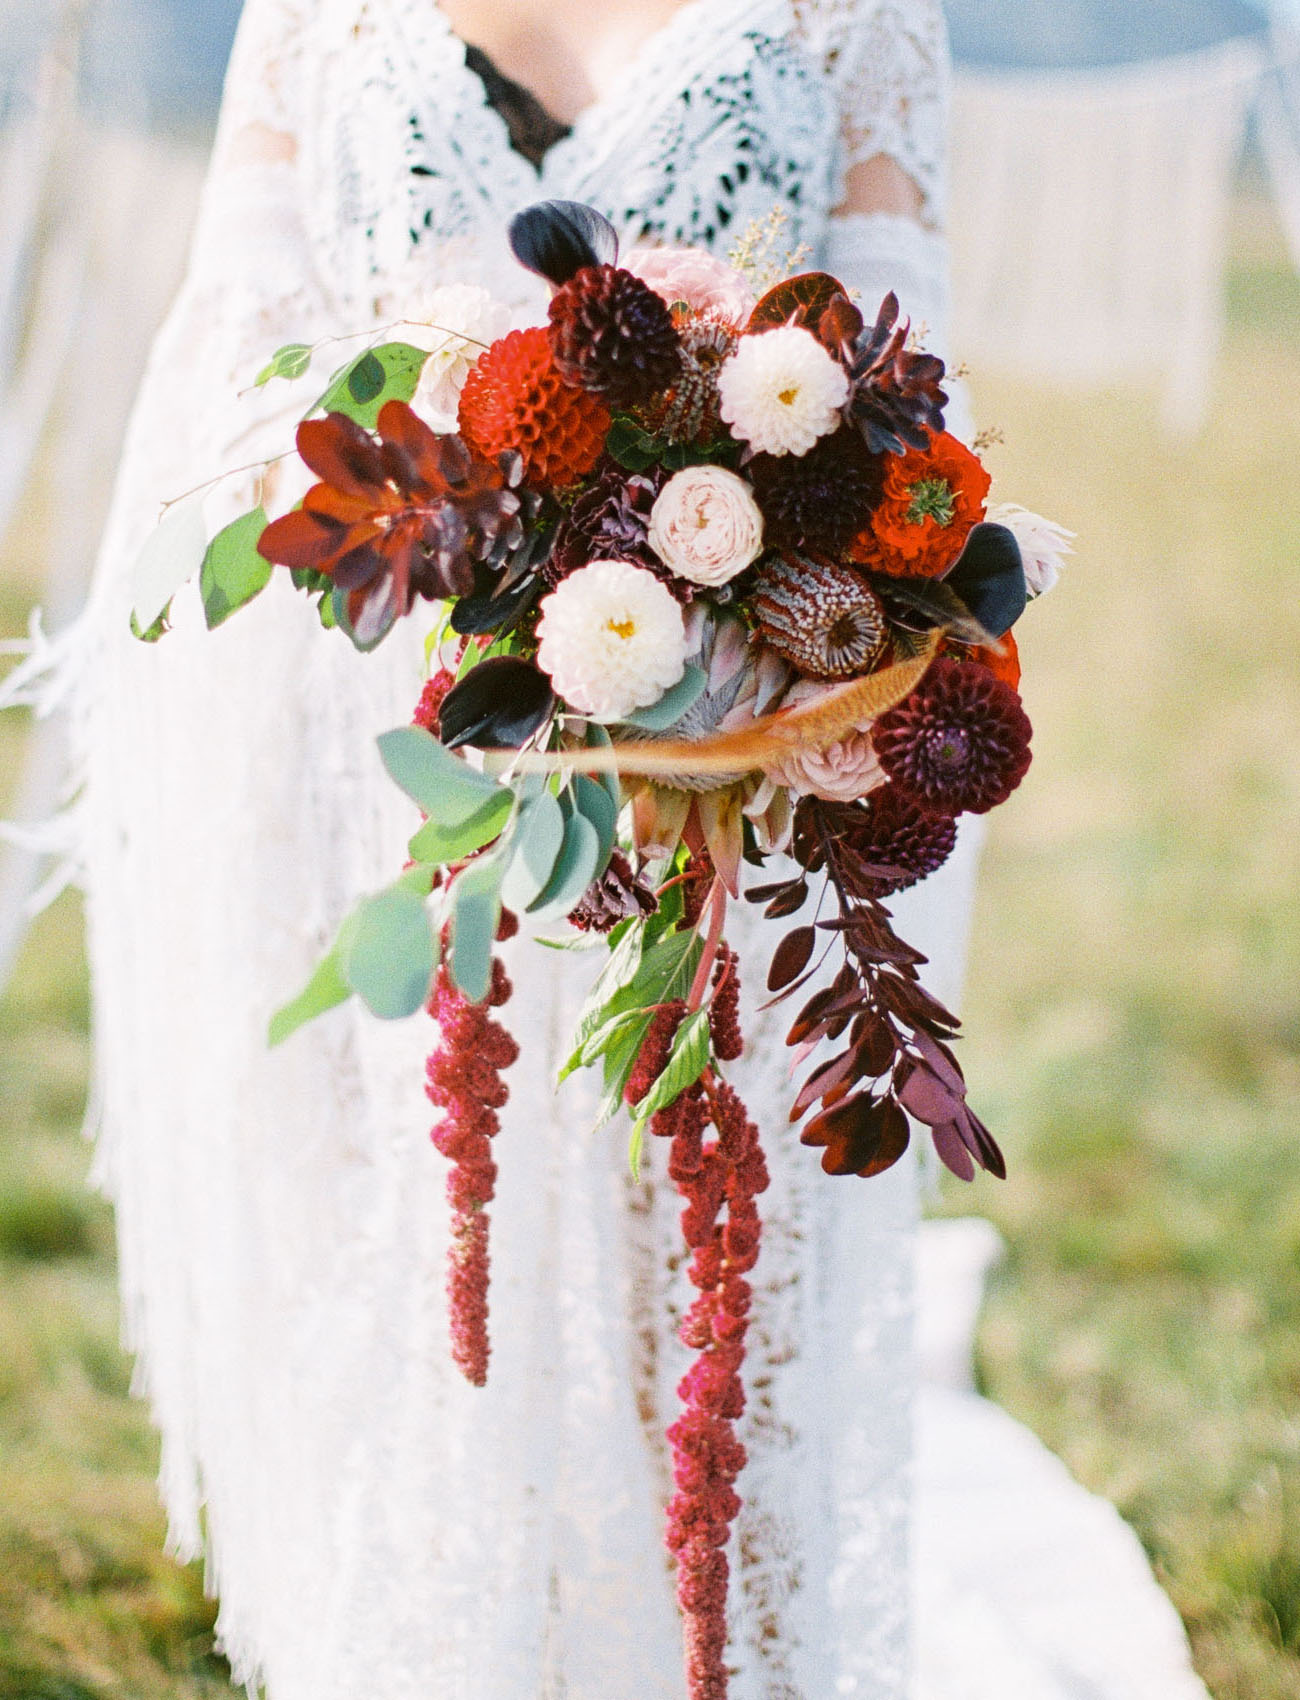 The wedding bouquet was done in sumptuous shades with cascading parts